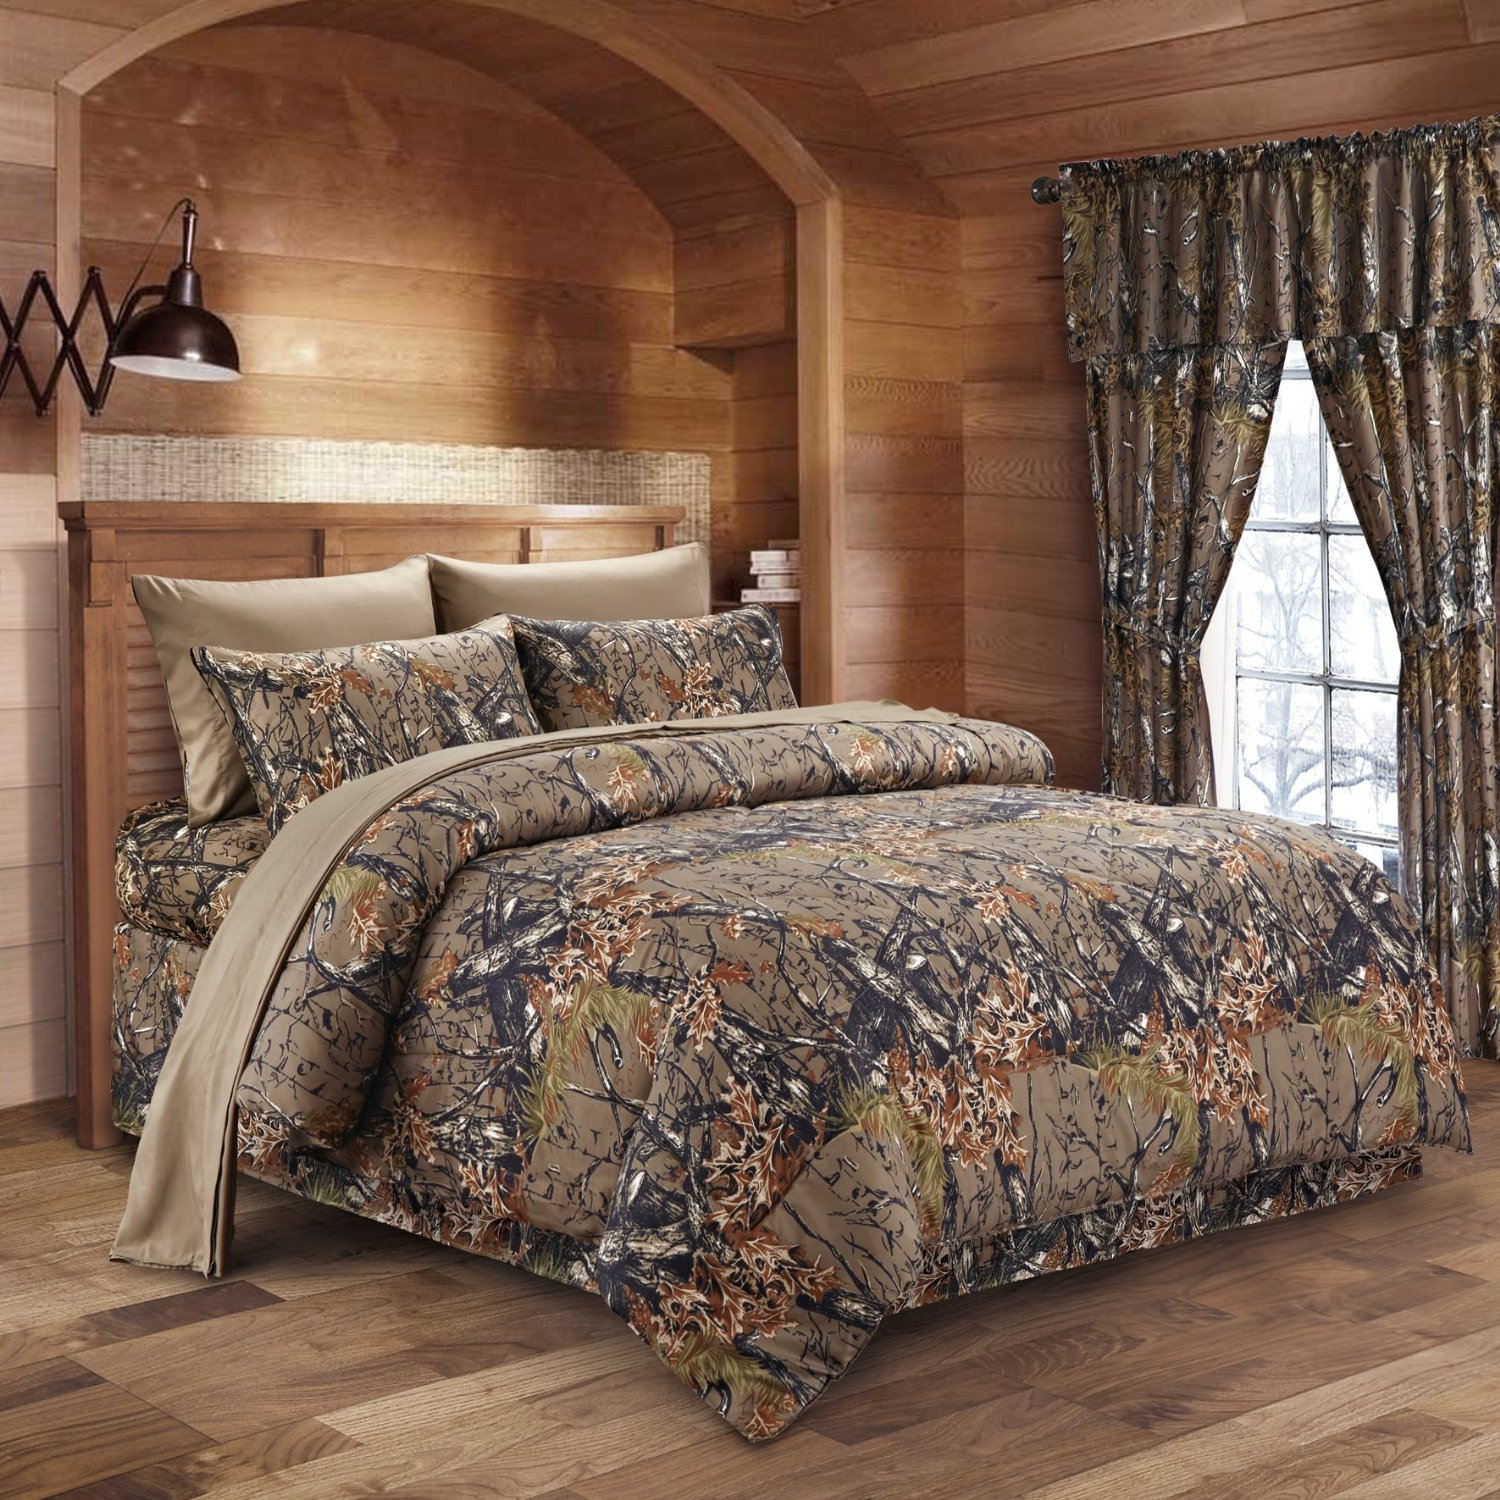 The Woods Natural Green Camouflage King 8pc Premium Luxury Comforter, Sheet, Pillowcases, and Bed Skirt Set by Regal Comfort Camo Bedding Set For Hunters Cabin or Rustic Lodge Teens Boys and Girls